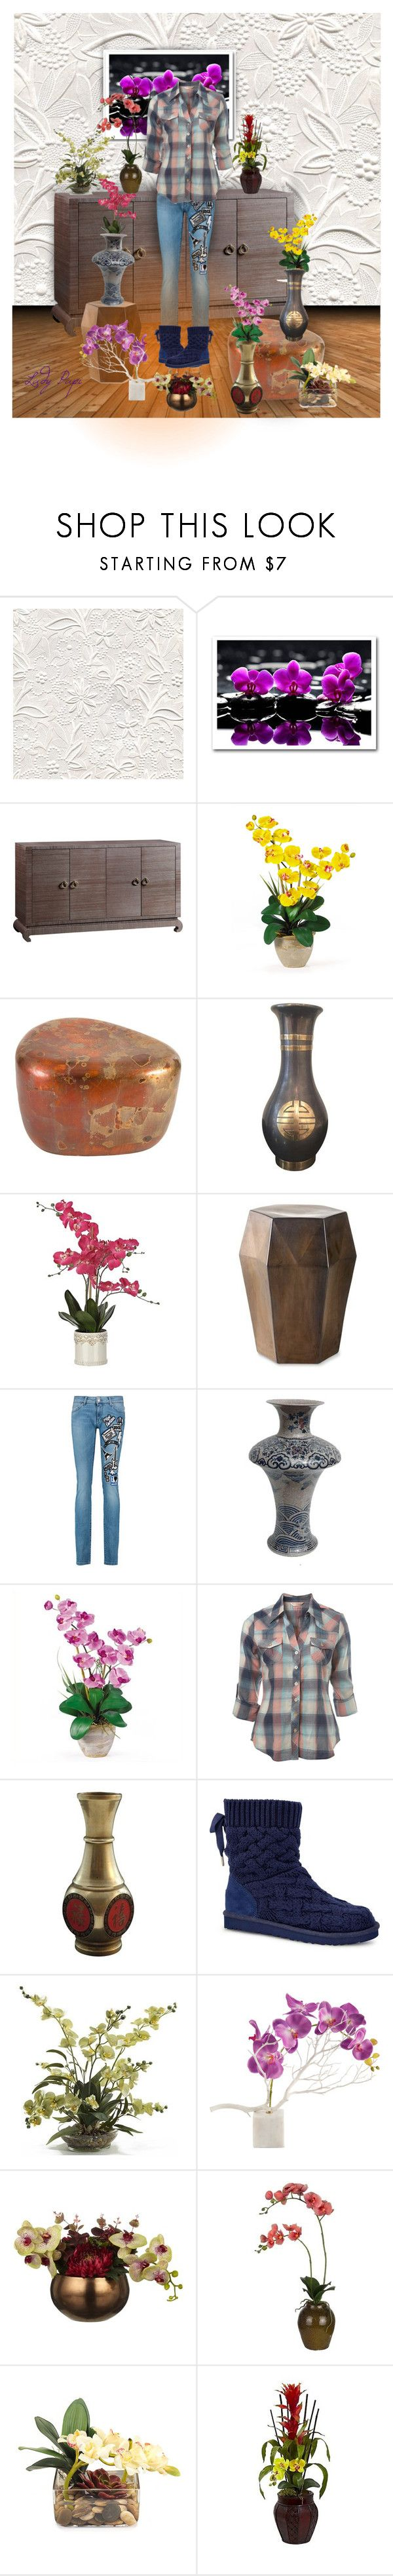 """""""Orchids for Sale"""" by papillon-ze-cat ❤ liked on Polyvore featuring Bungalow 5, Williams-Sonoma, Pierre Balmain, Nearly Natural, Miss Selfridge, UGG, Home Decorators Collection, Sia and John-Richard"""